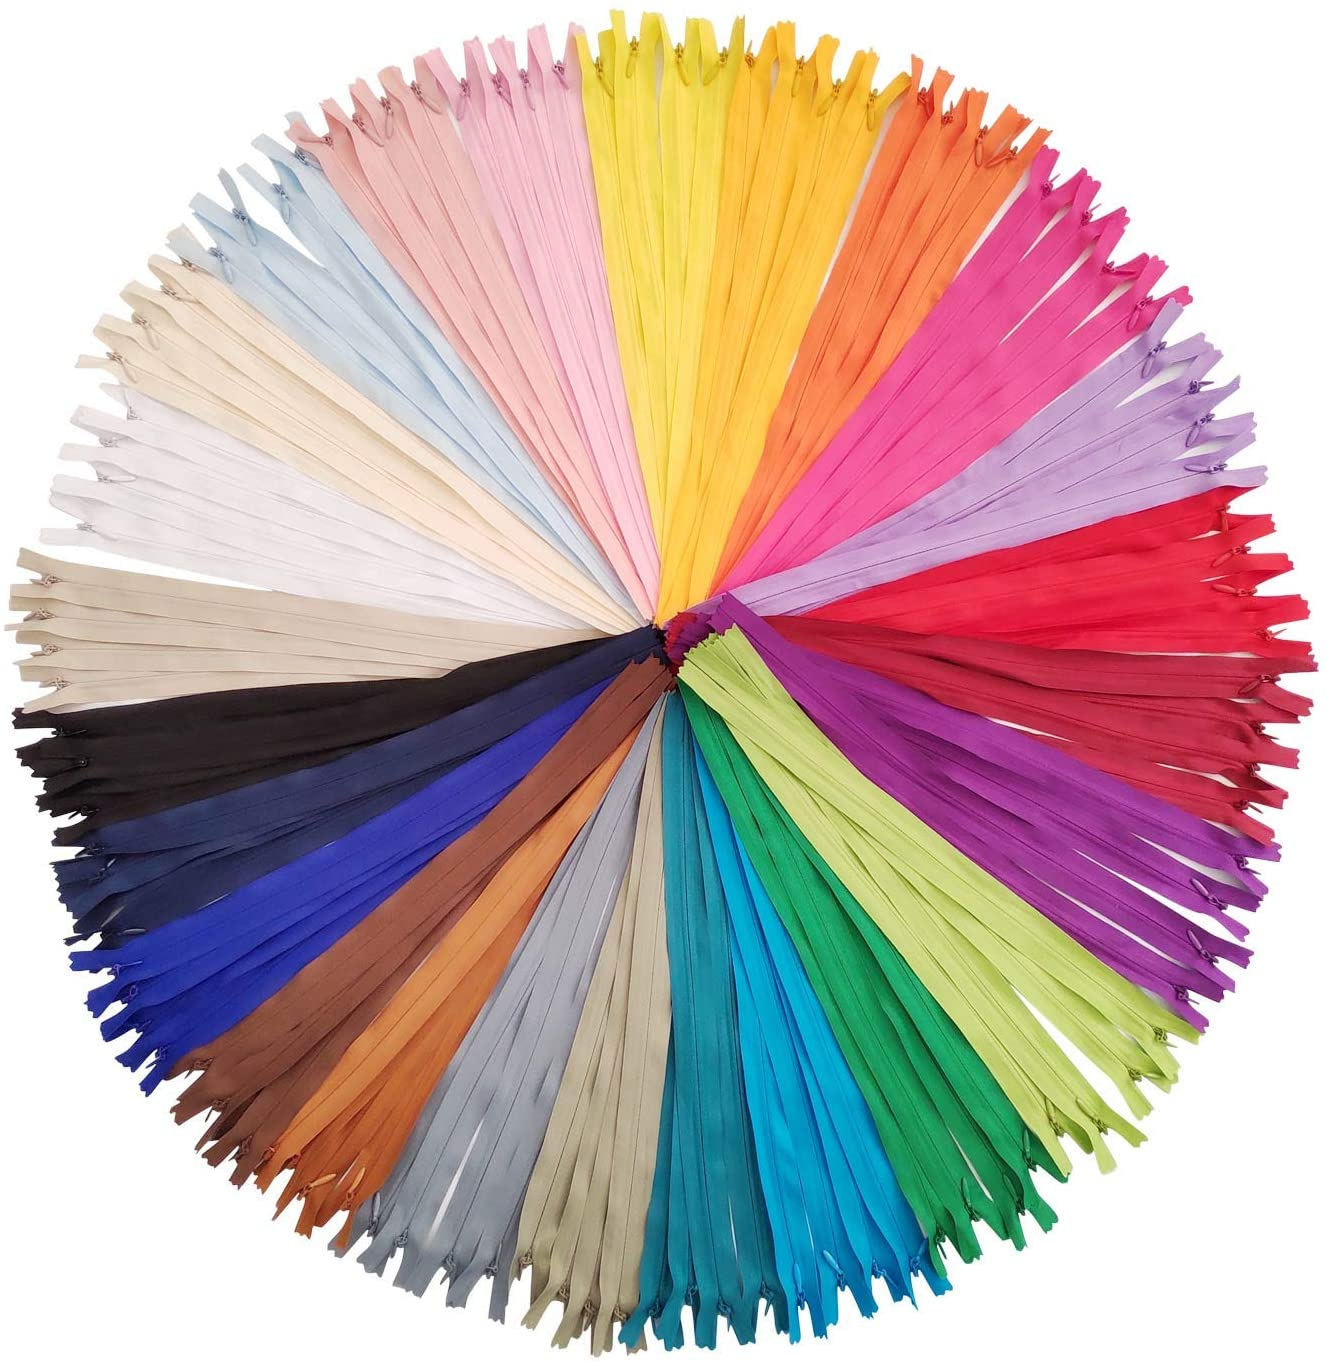 Sewing Zippers, Segarty 100PCS Invisible Zipper 16 inch Nylon Coil Bulk 25 Colors Mixed, Tailor Sewer Tools Garment Accessories and Supplies for Sewing Crafts